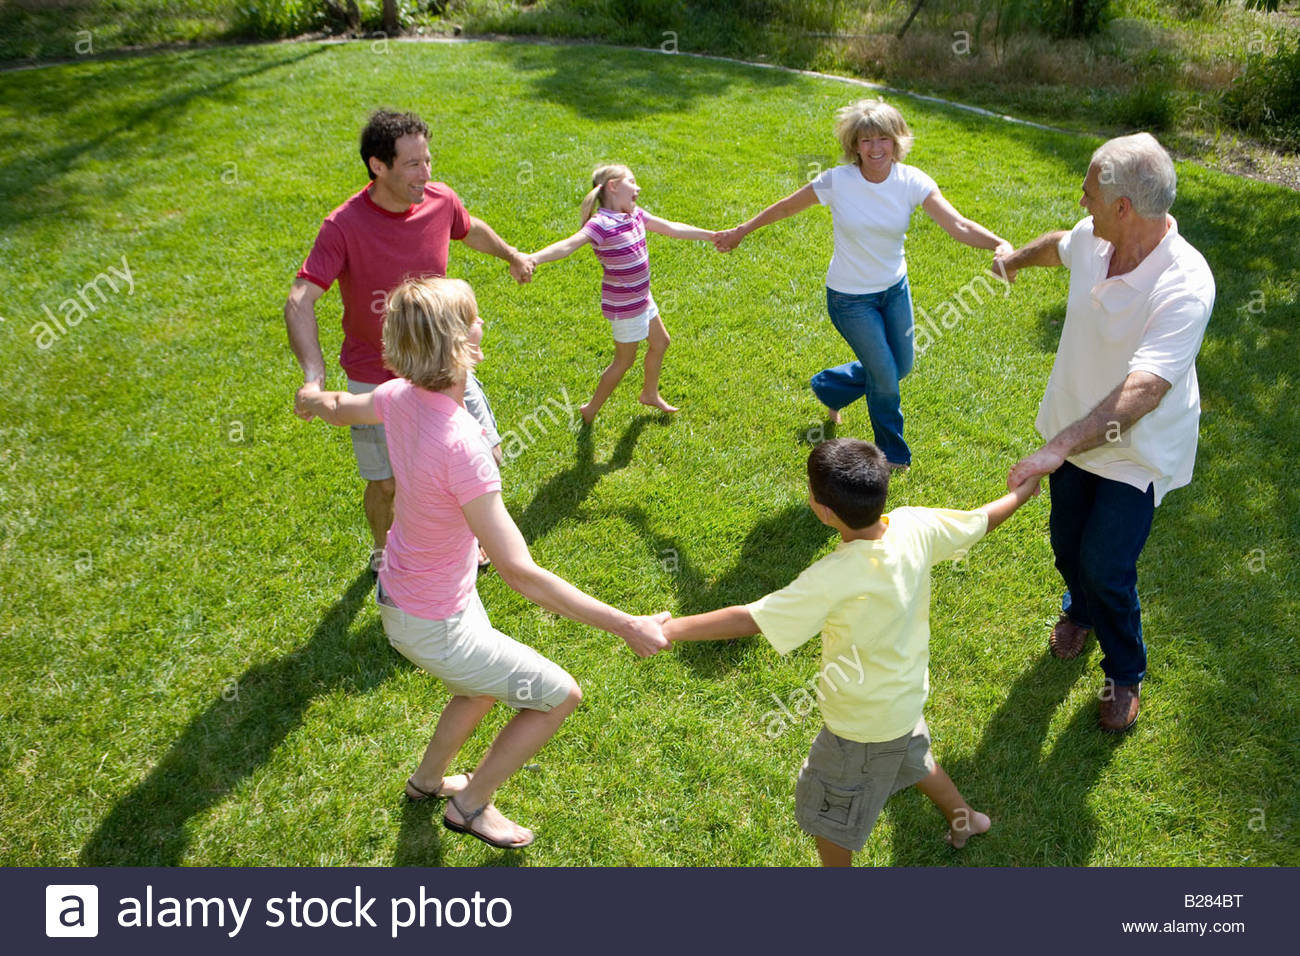 Family of three generations holding hands in circle in garden, elevated view - Stock Image